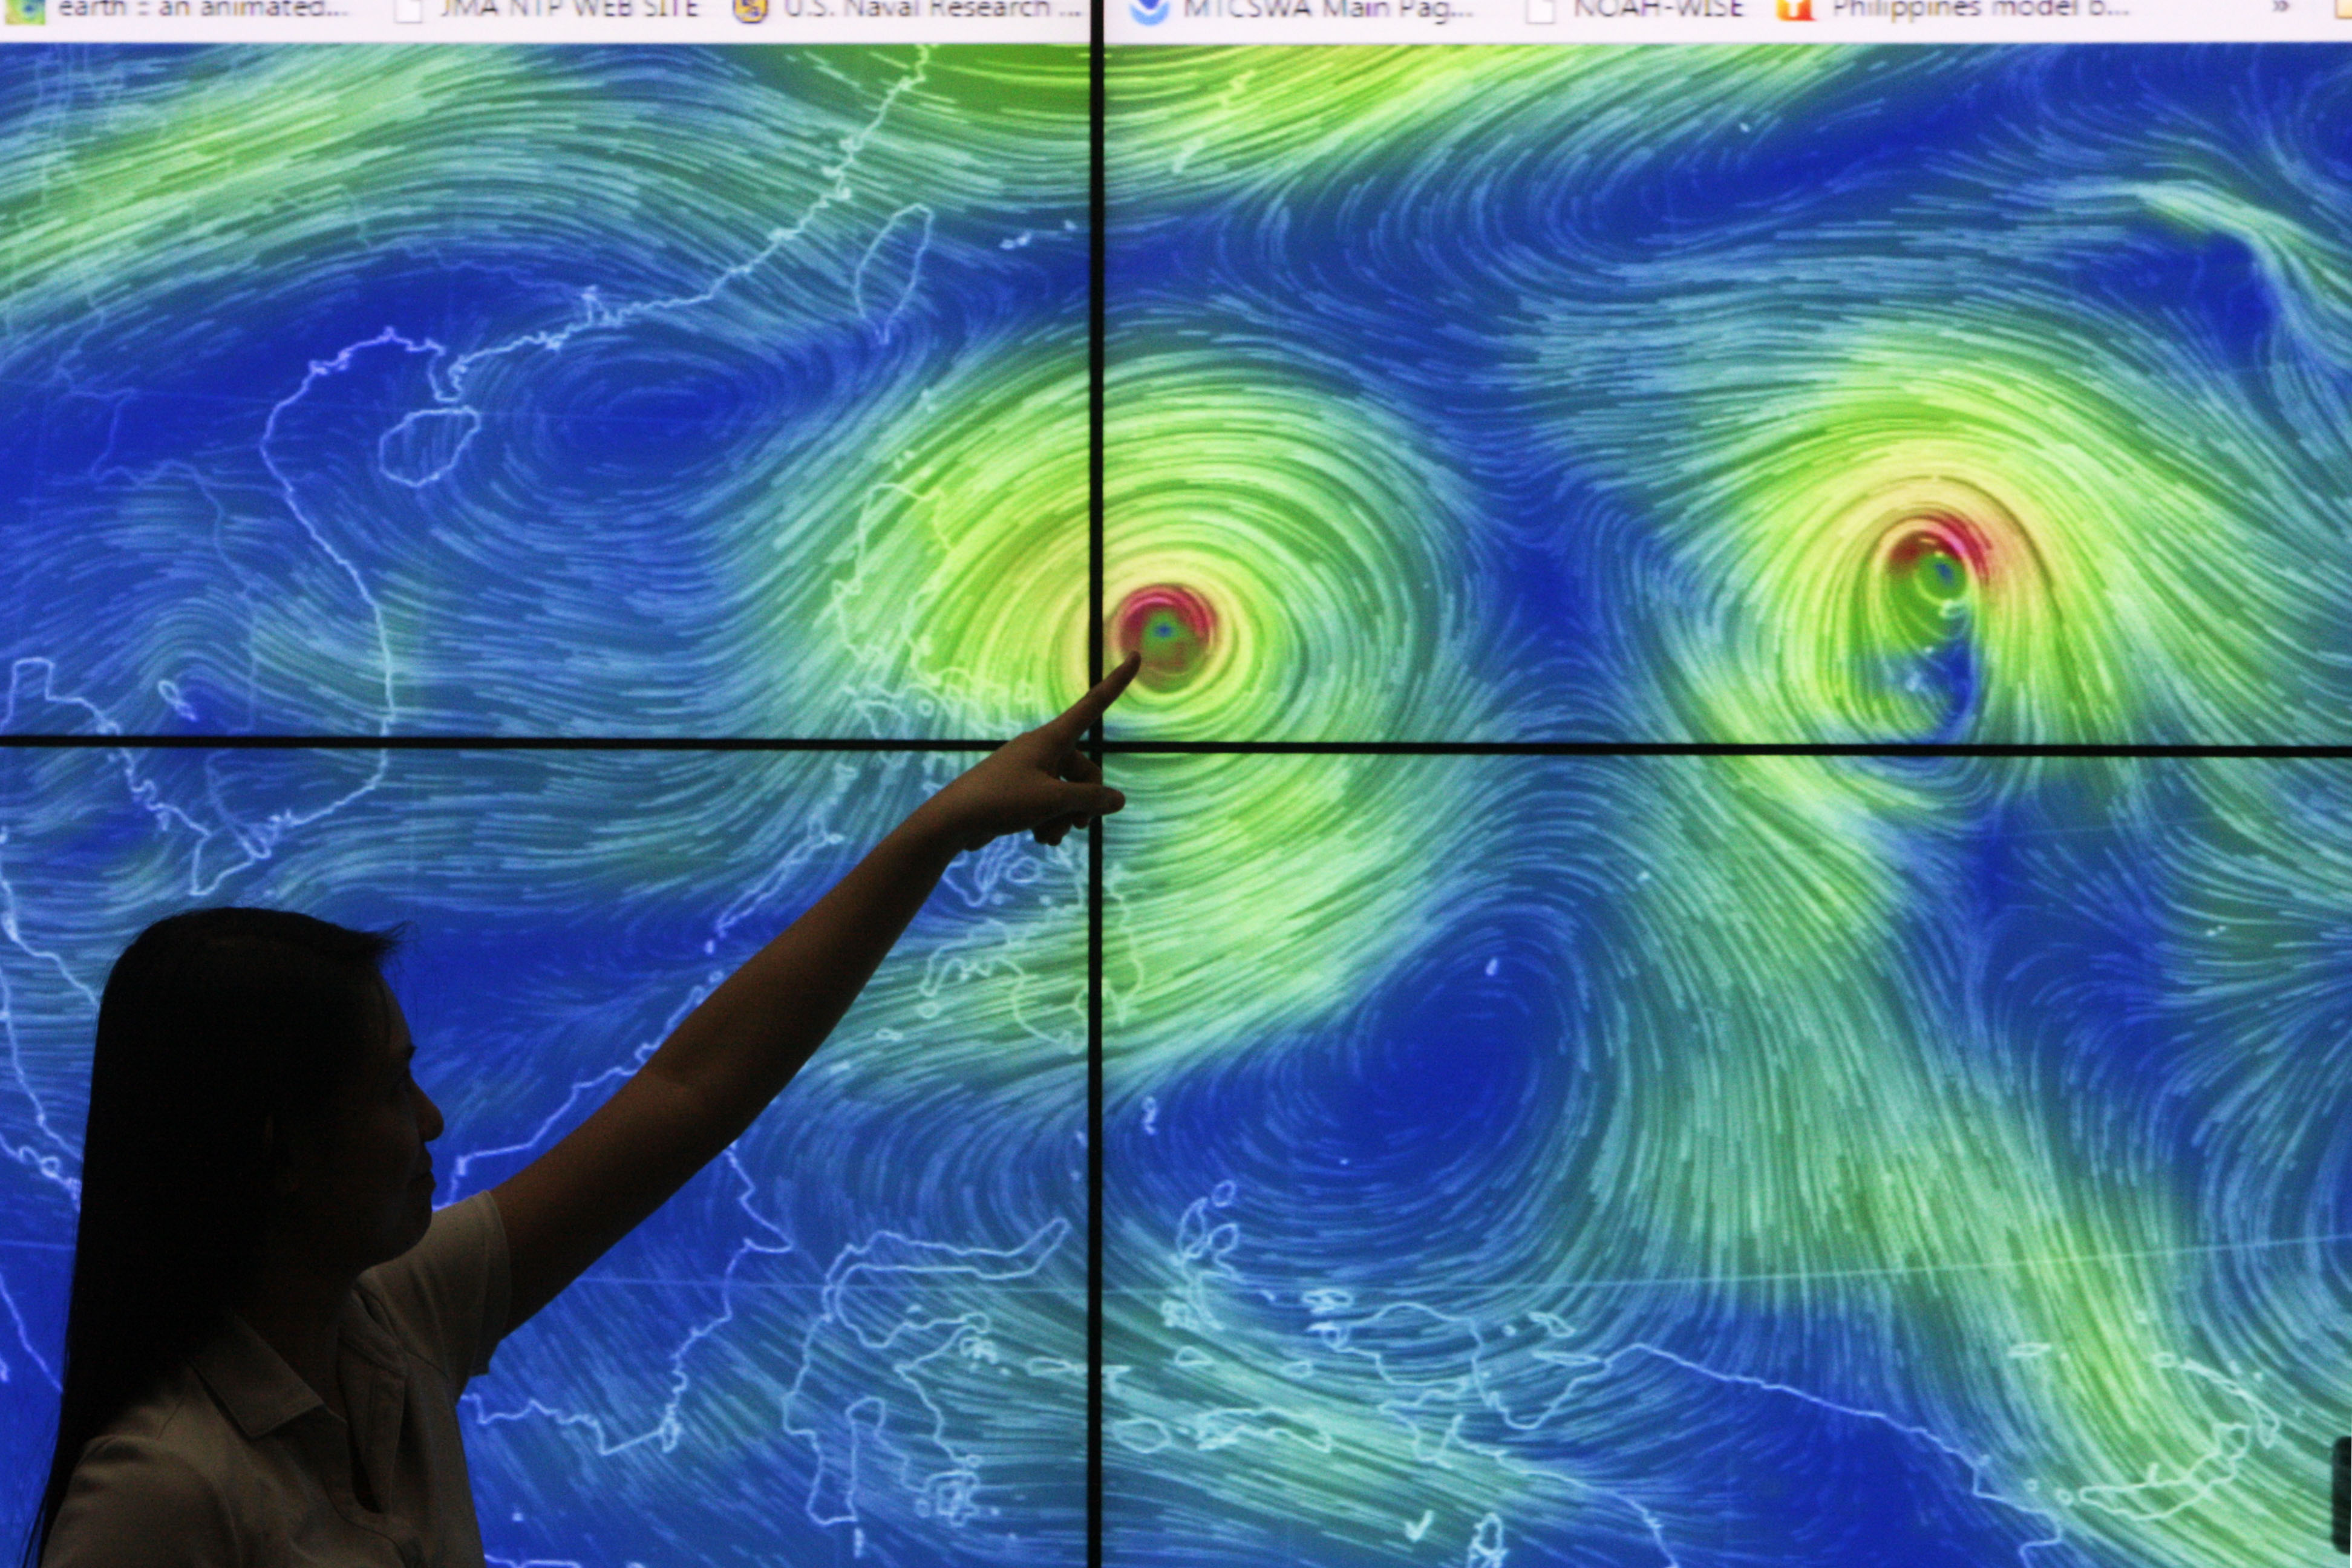 DISASTER-PRONE. Weather forecasters monitor Typhoon Lando at the PAGASA head office in Quezon City on Friday, October 16, 2015. Photo by Ben Nabong/Rappler